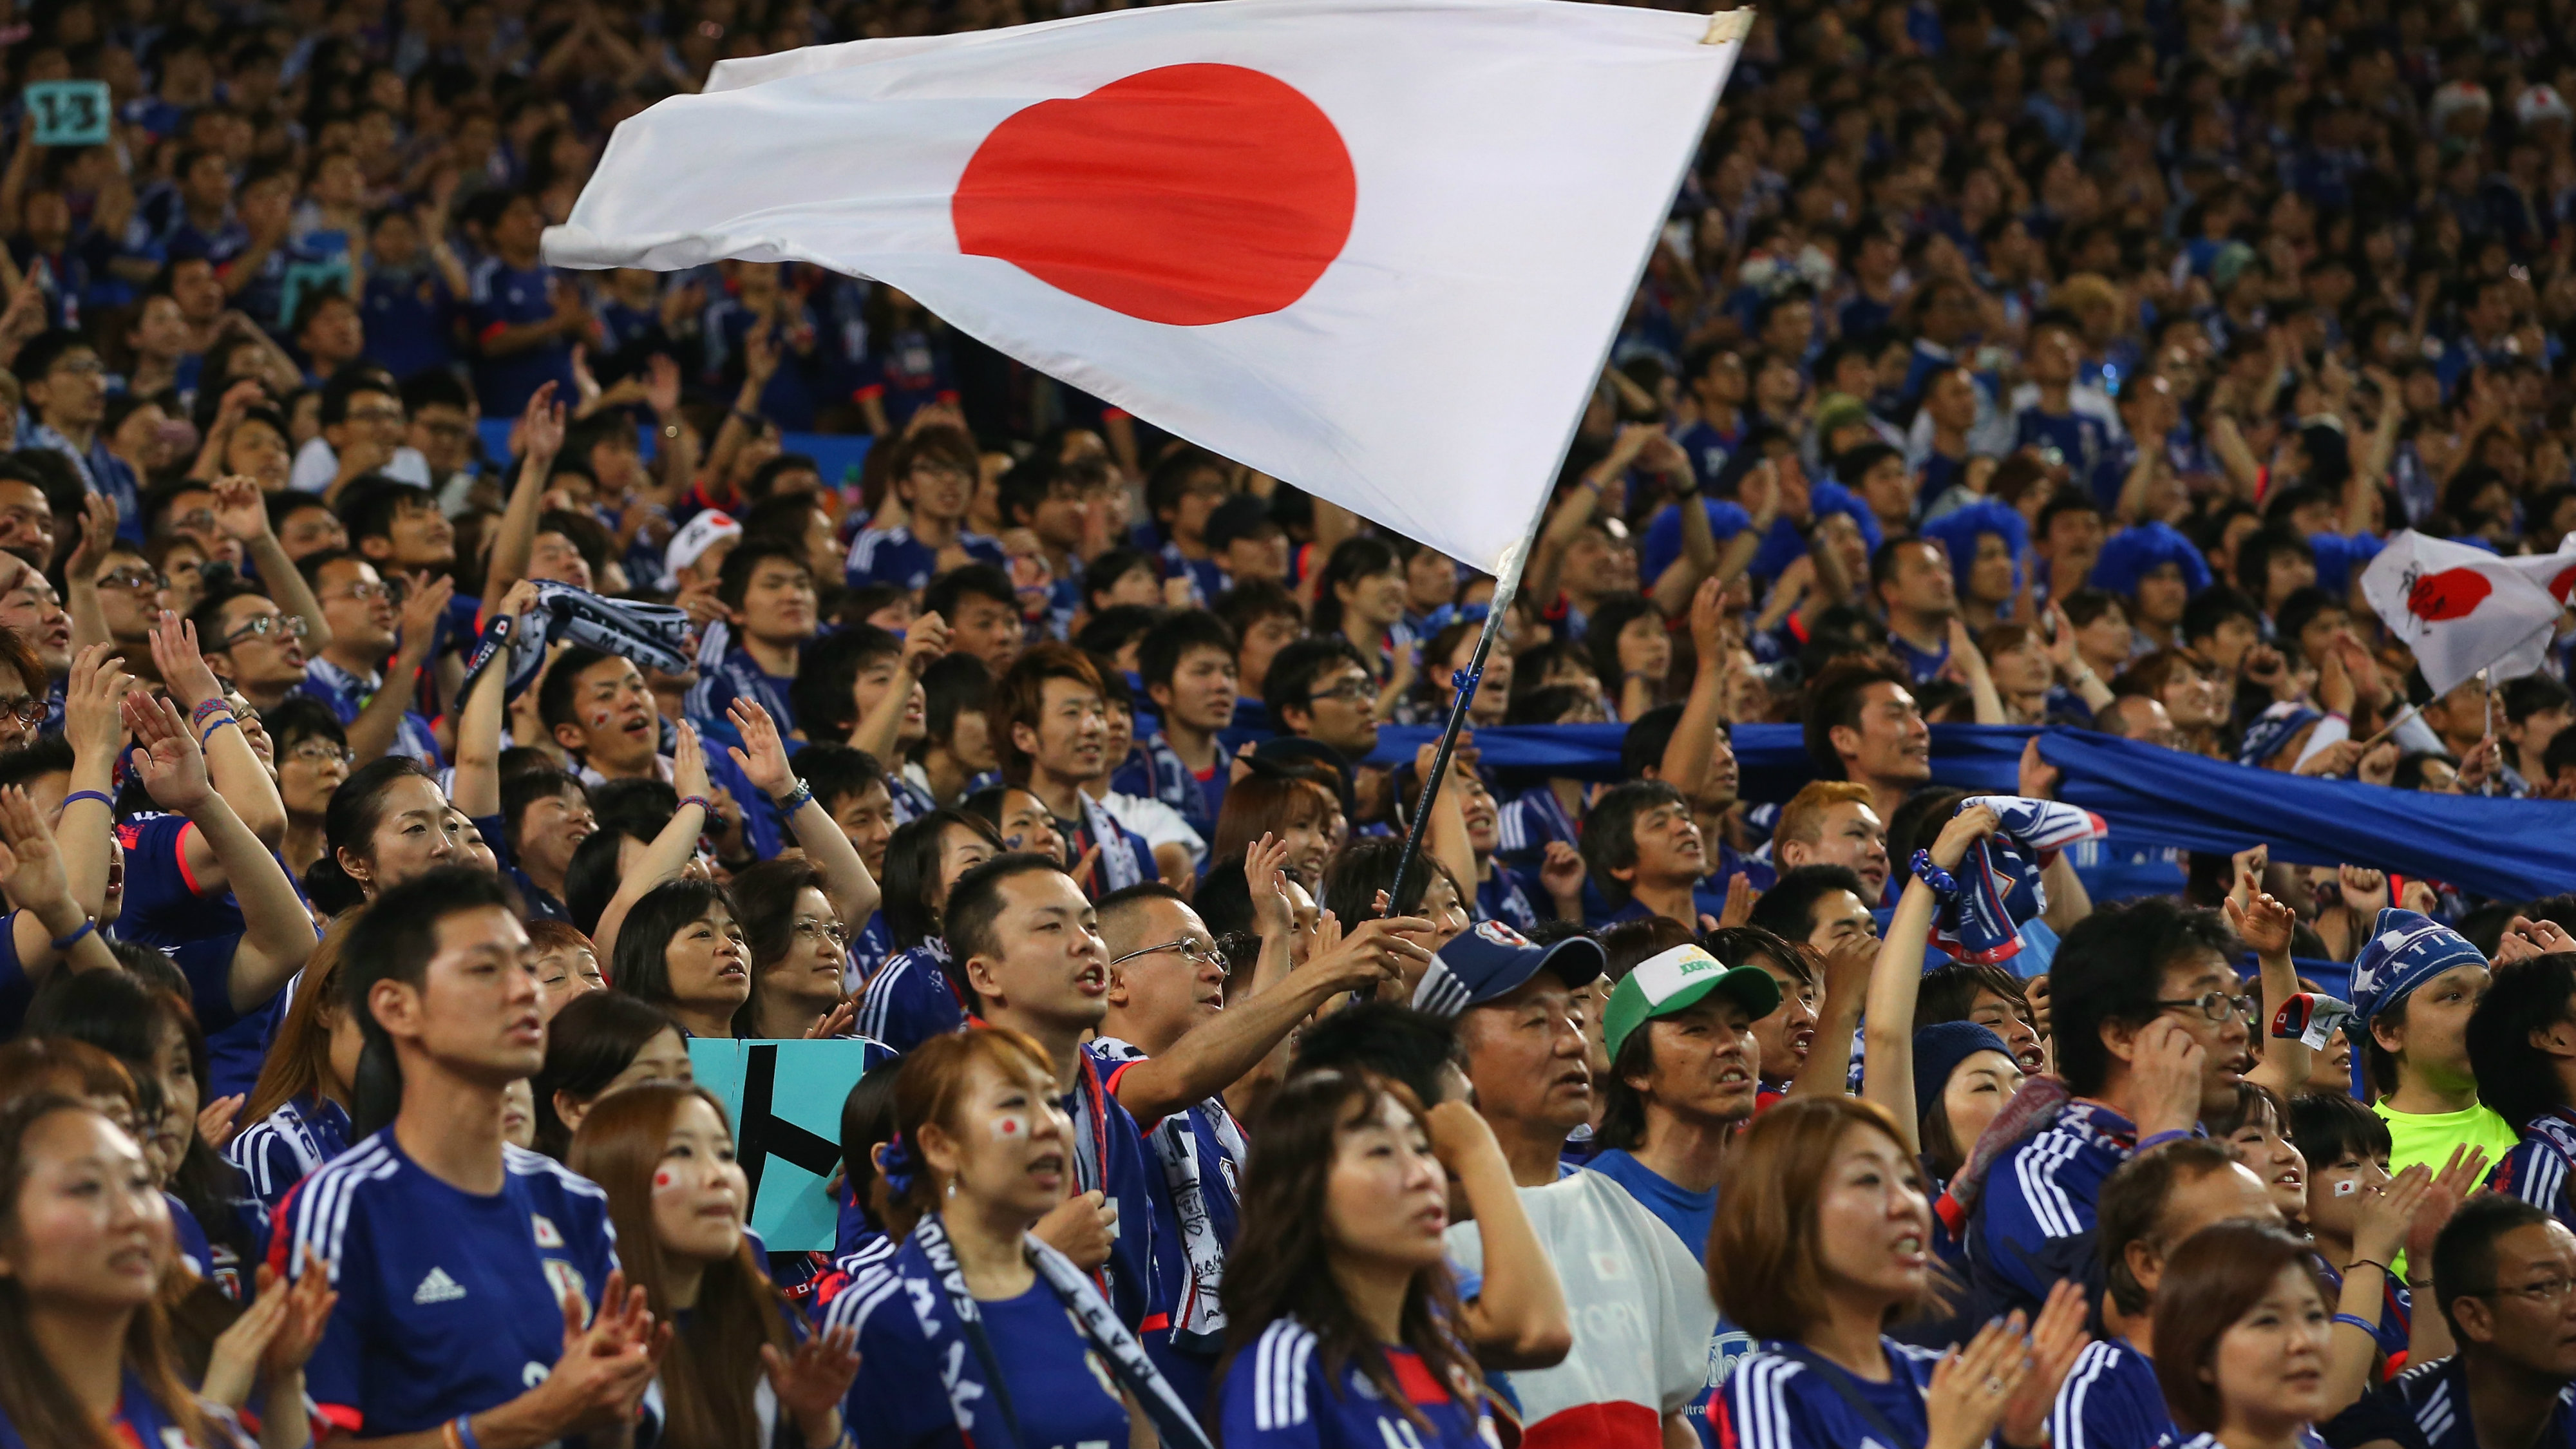 Japan beats Australia to qualify for 2018 soccer World Cup finals